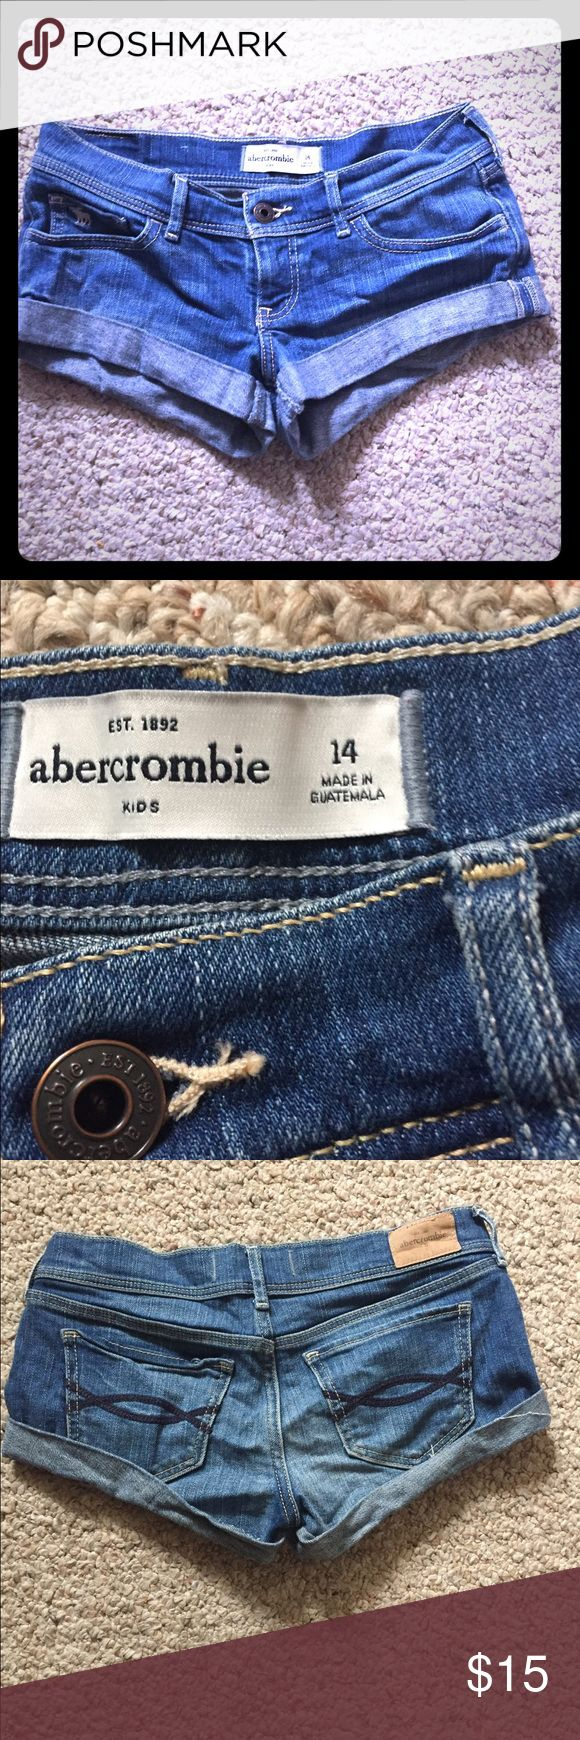 Abercrombie Girls Shorts Abercrombie Girls Shorts size 14 great condition! Abercrombie & Fitch Bottoms Shorts